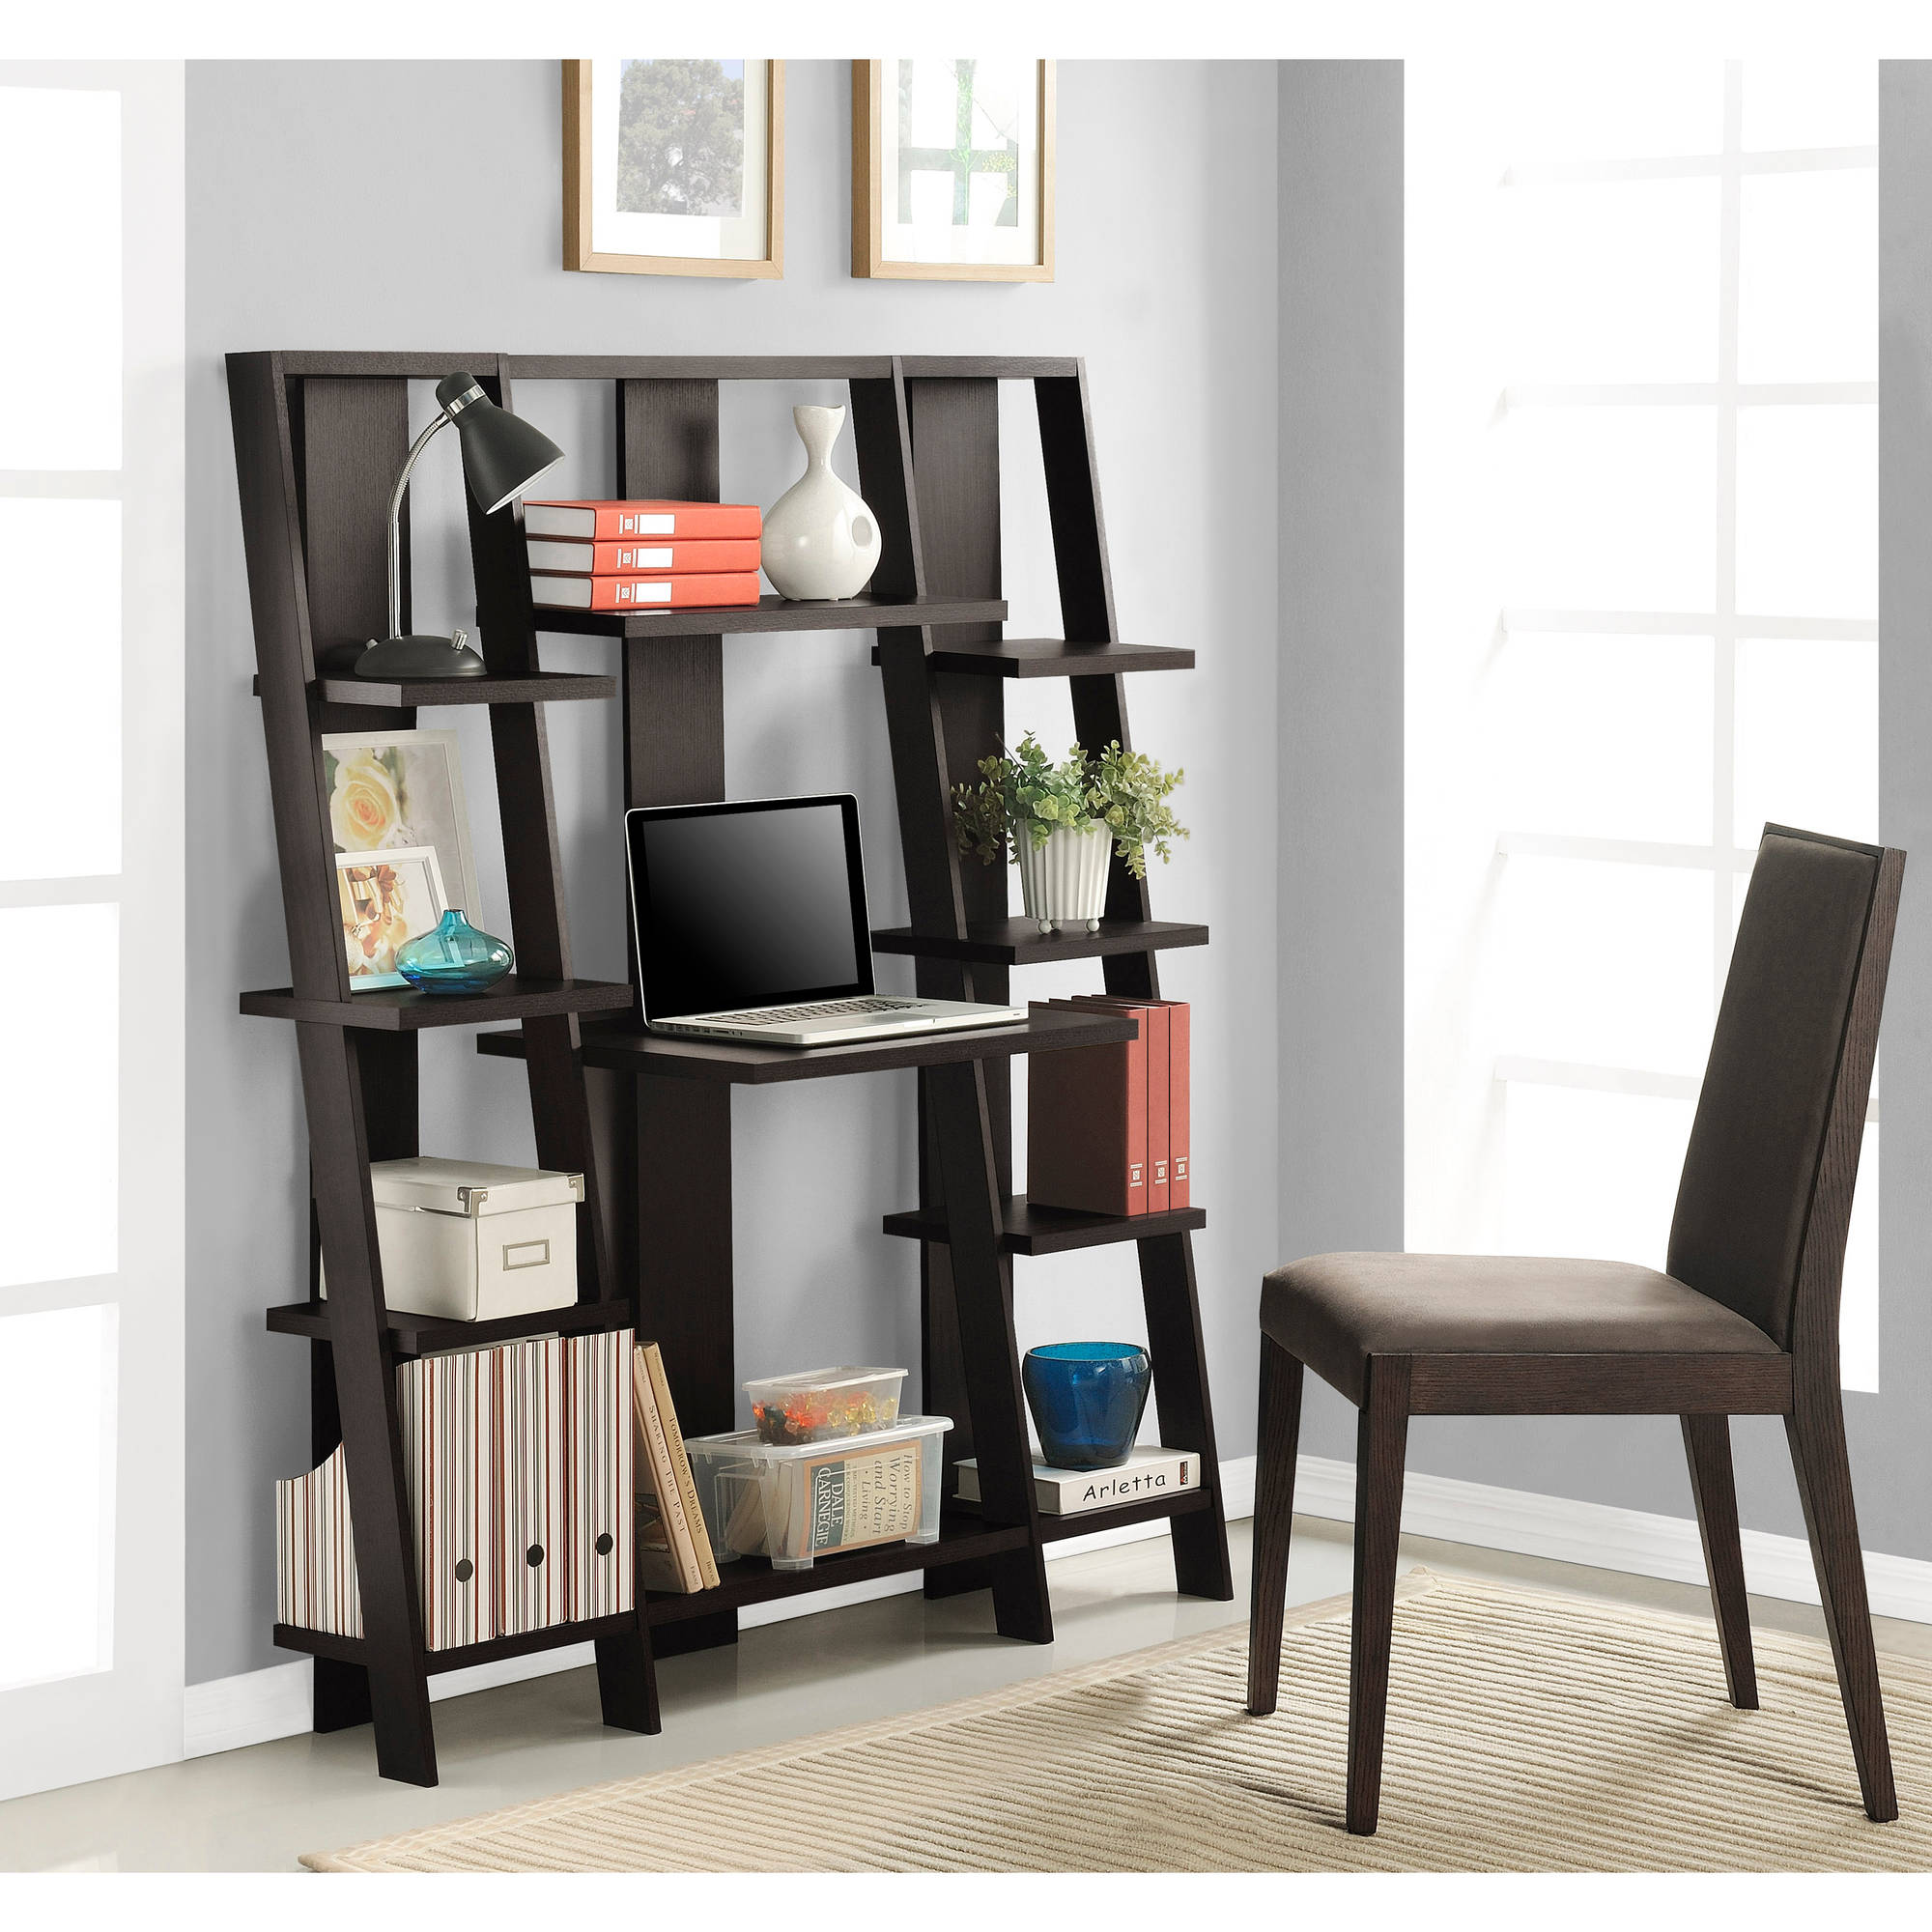 Ameriwood Shelf Bookcase Multiple Finishes Walmartcom - Bookshelves walmart